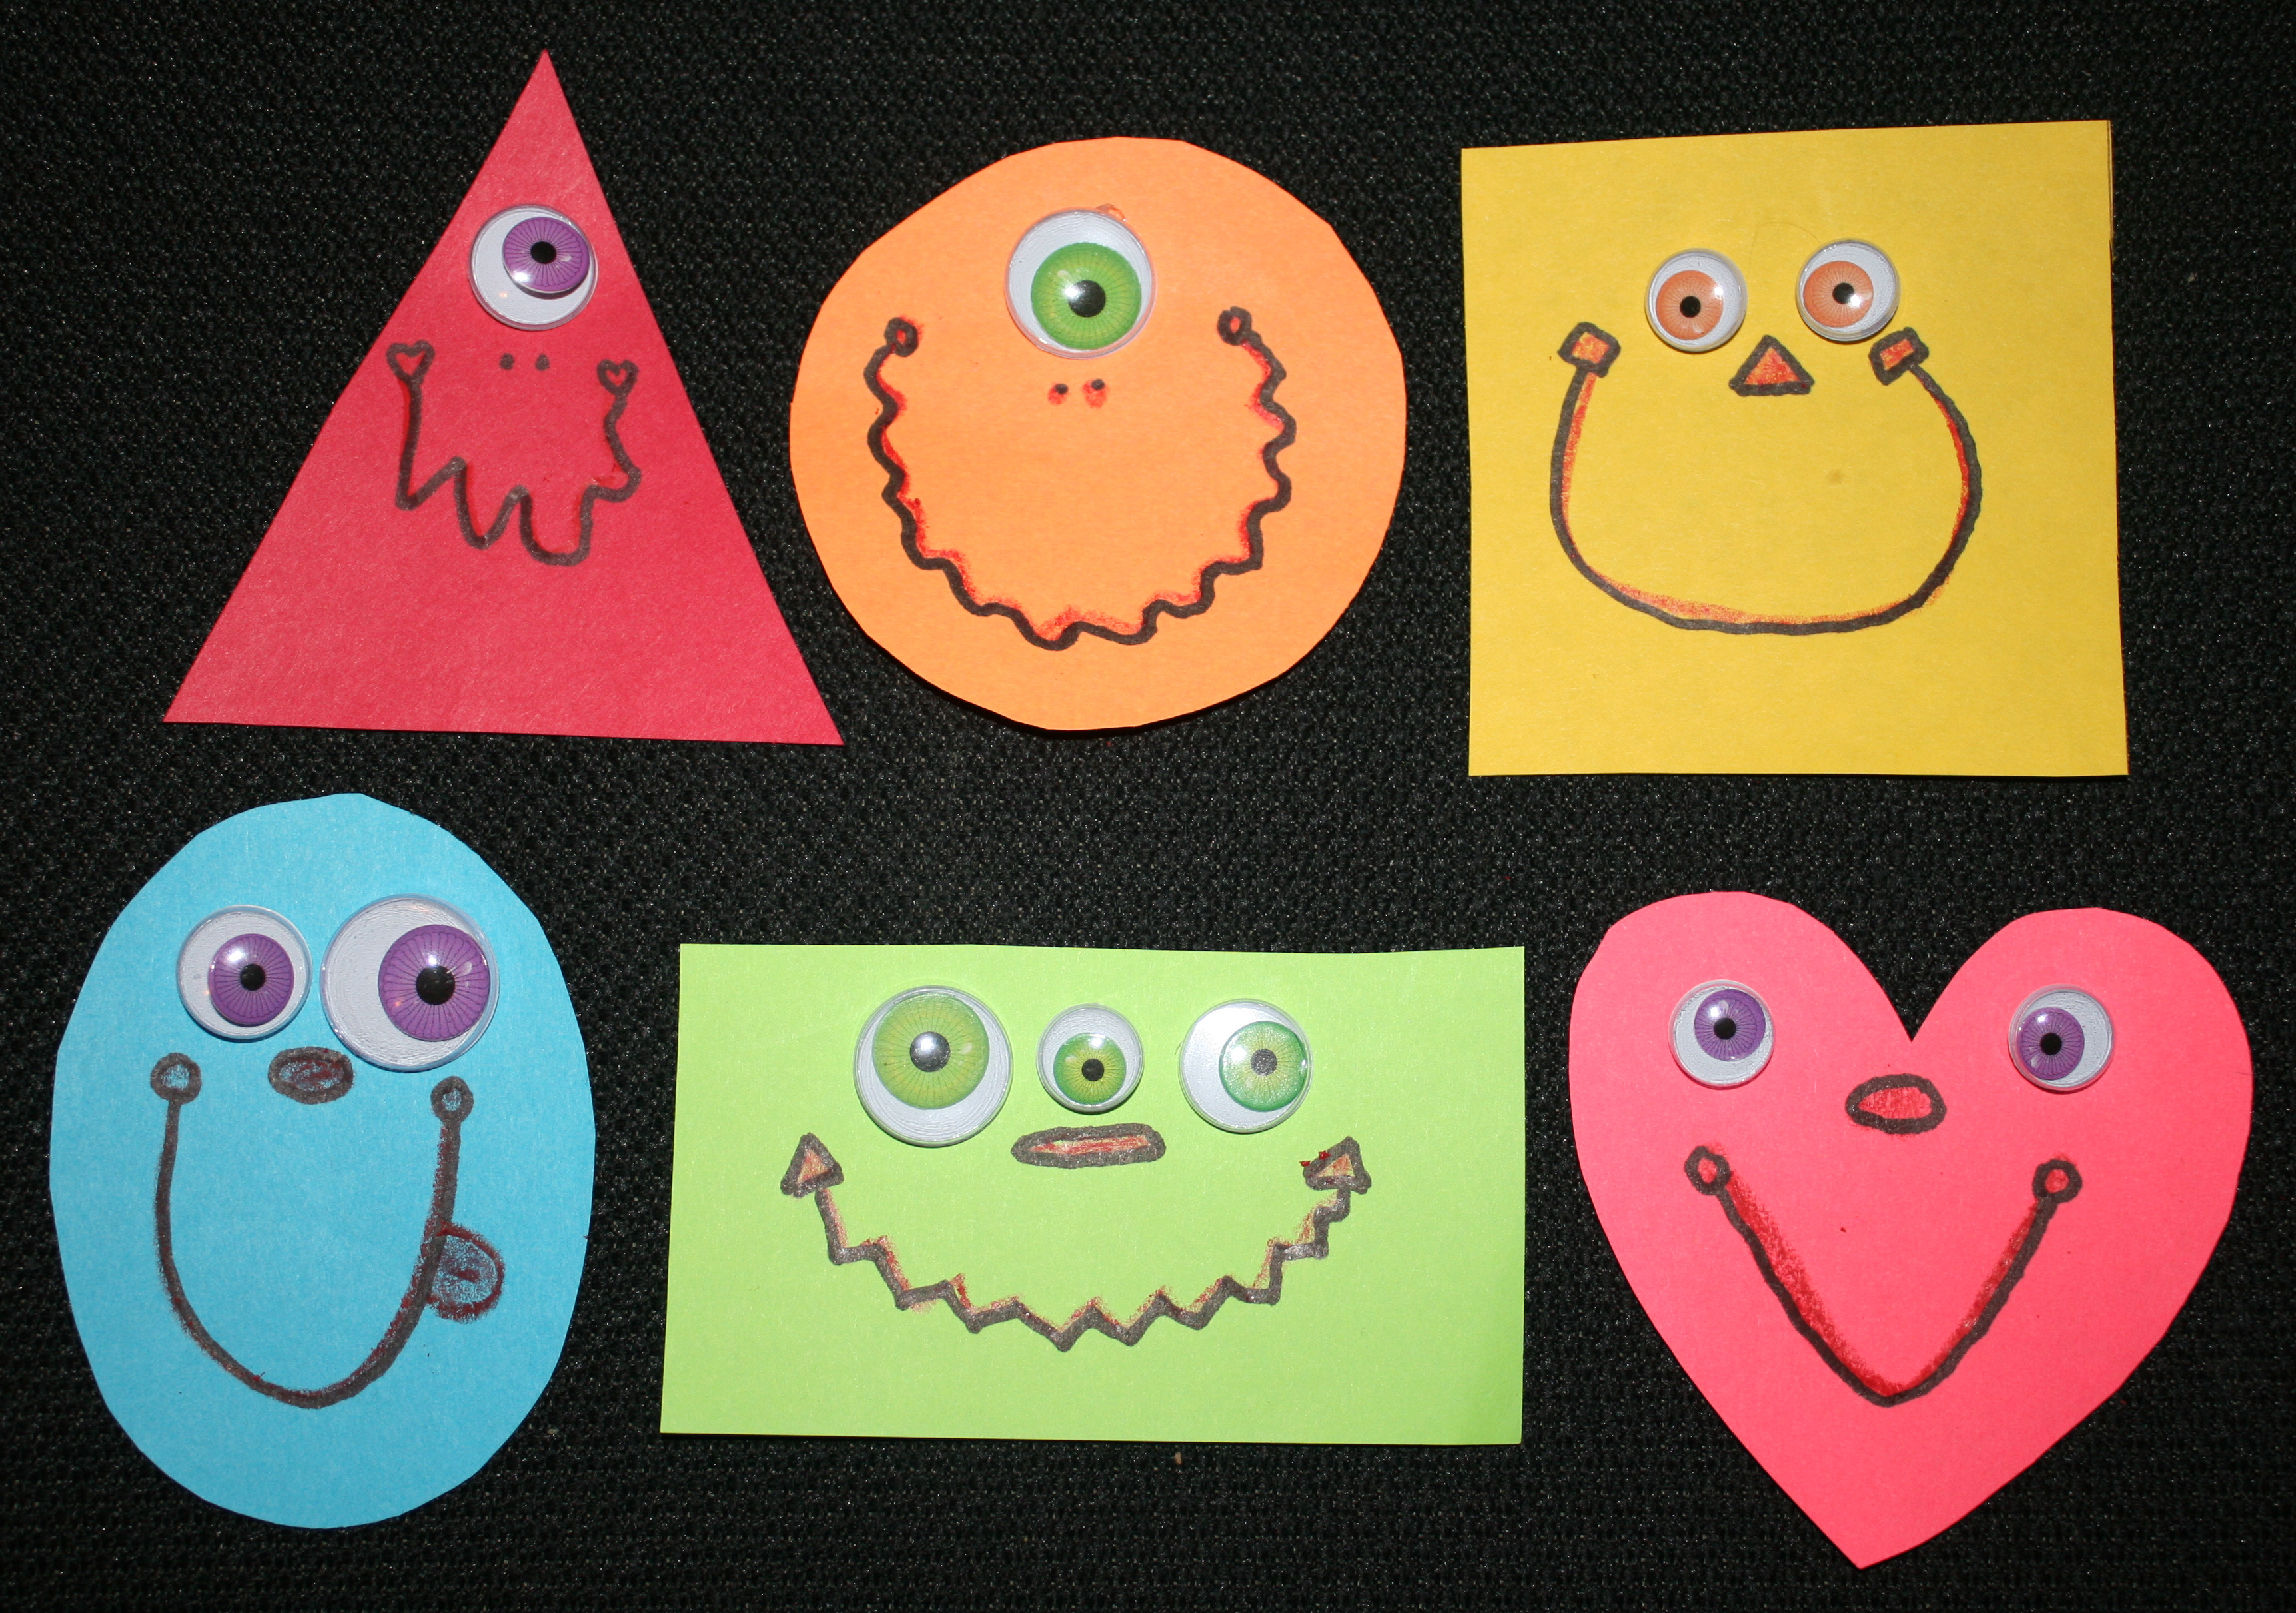 shape monsters, monster ideas, monster activities, halloween ideas, halloween games, halloween activities, october books, monster books, glad monster sad monster ideas, glad monster sad monster activities, go away big green monster ideas, go away big green monster activities, monster snacks,